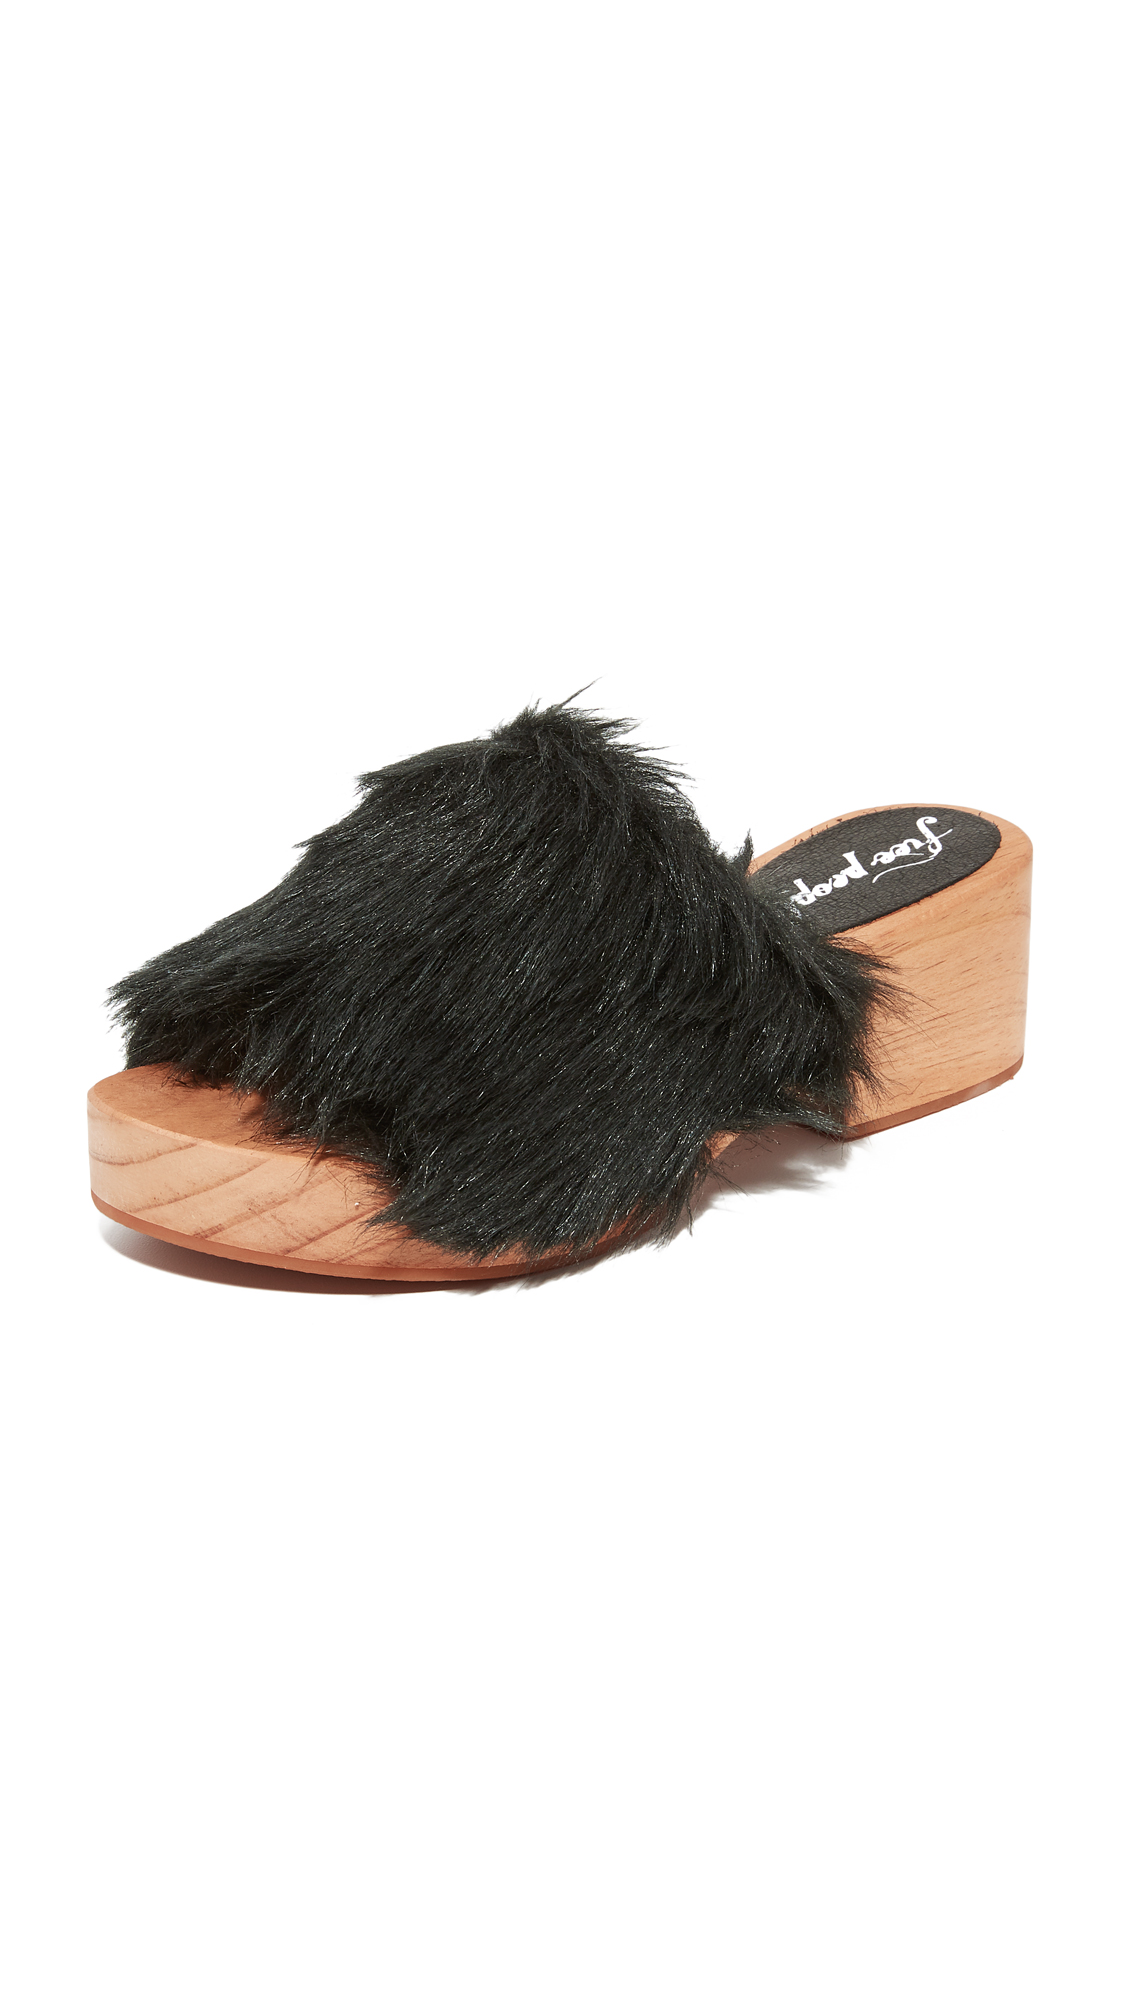 Free People Faux Fur Sonnet Clogs - Black